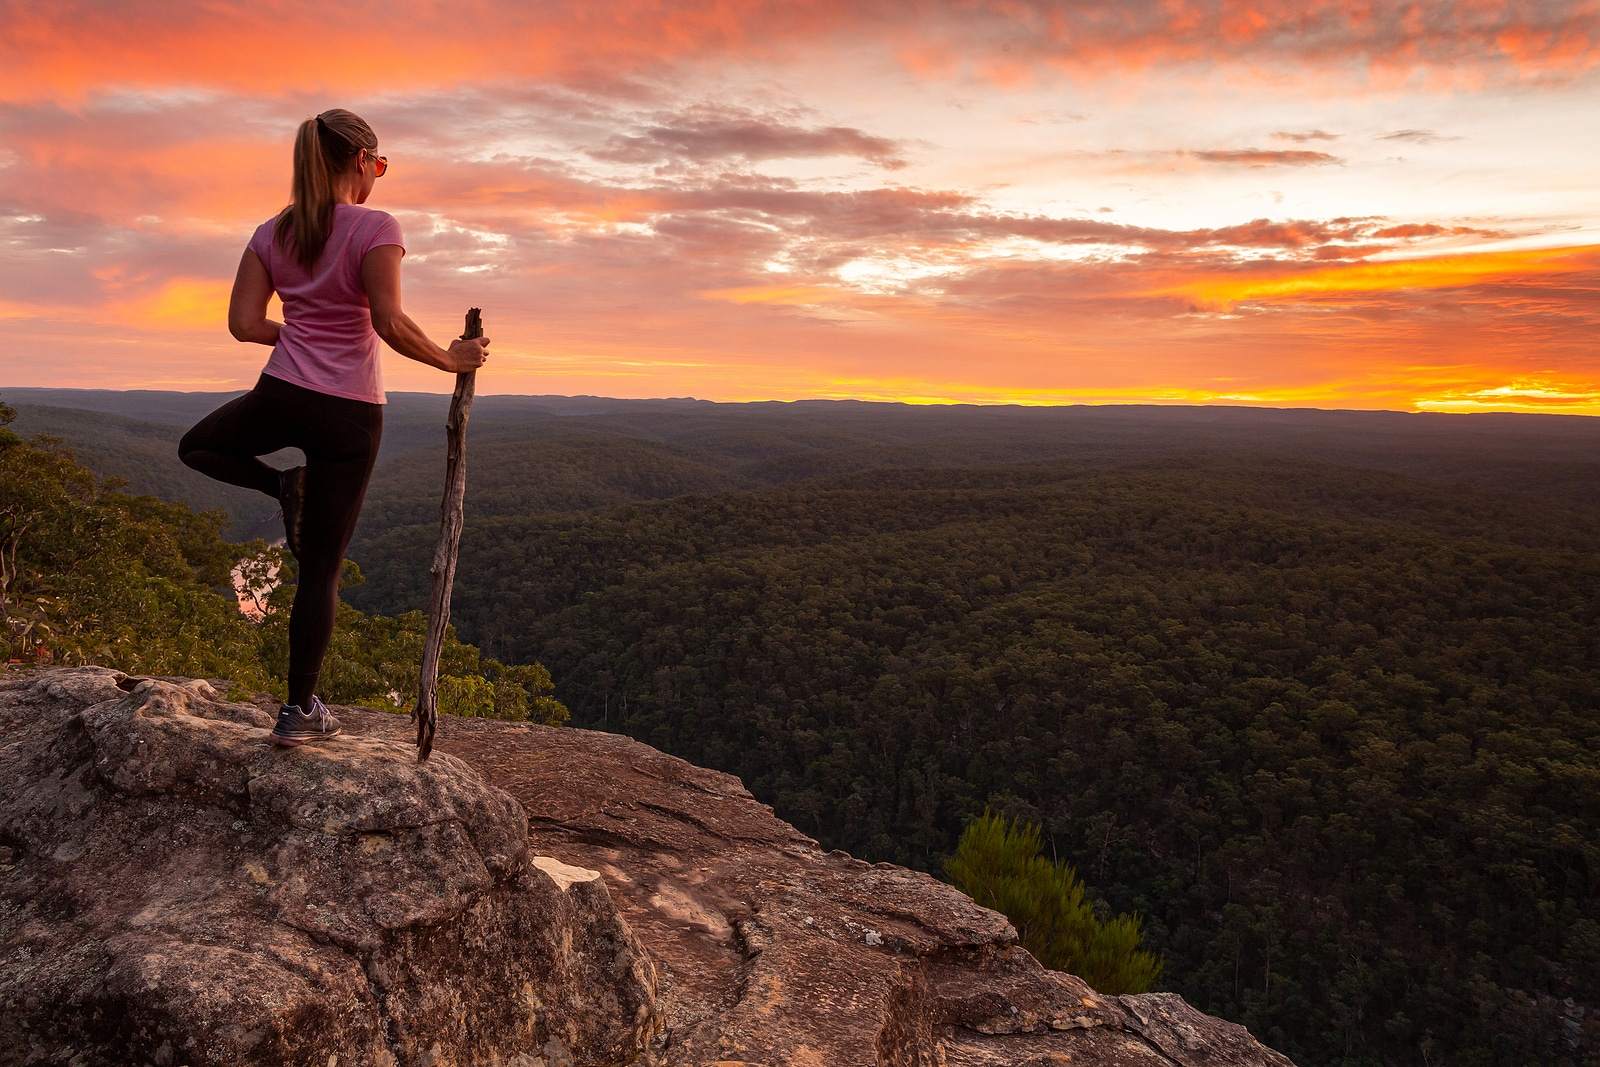 Woman standing on one foot holding a stick, on the top of a cliff overlooking the sunset. With comprehensive SEO services for therapists and counselors, you can focus on what you do best as a private practice owner. Get SEO help for therapists with Simplified SEO Consulting.